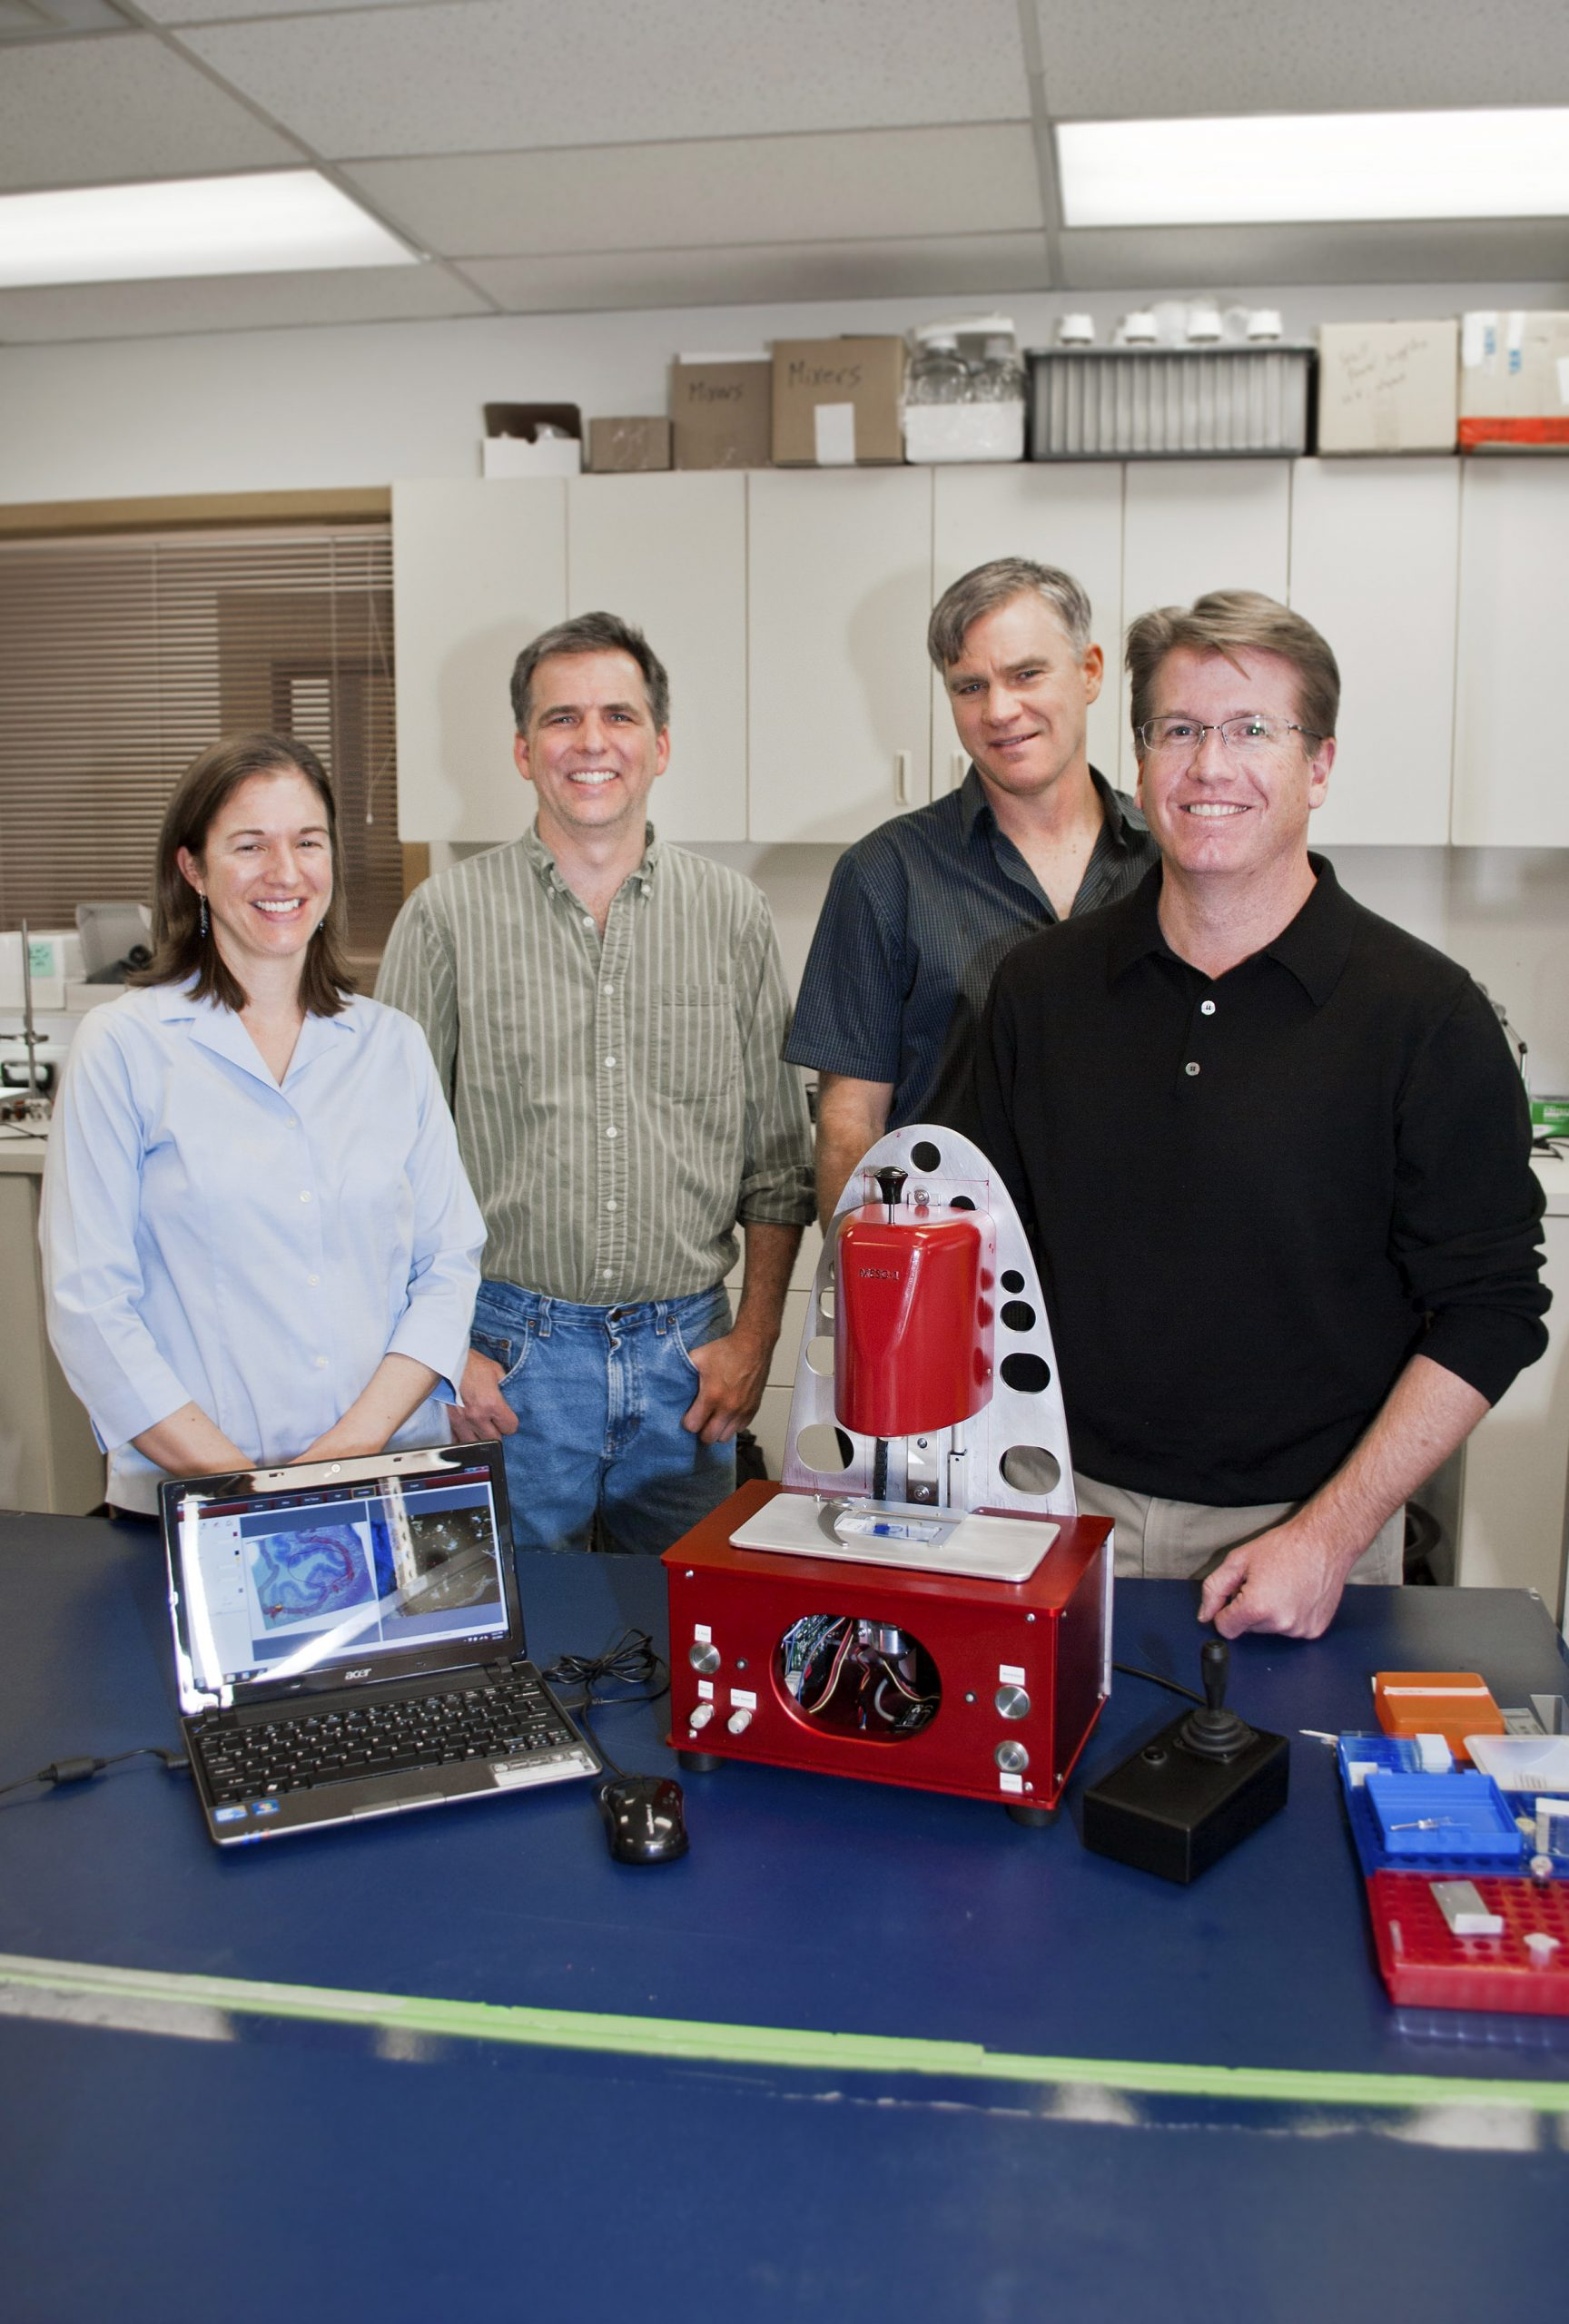 The AvanSci Bio team is (front to back) Rob Parry, Katherine Geiersbach, Mark Herrmann and Nils Adey.